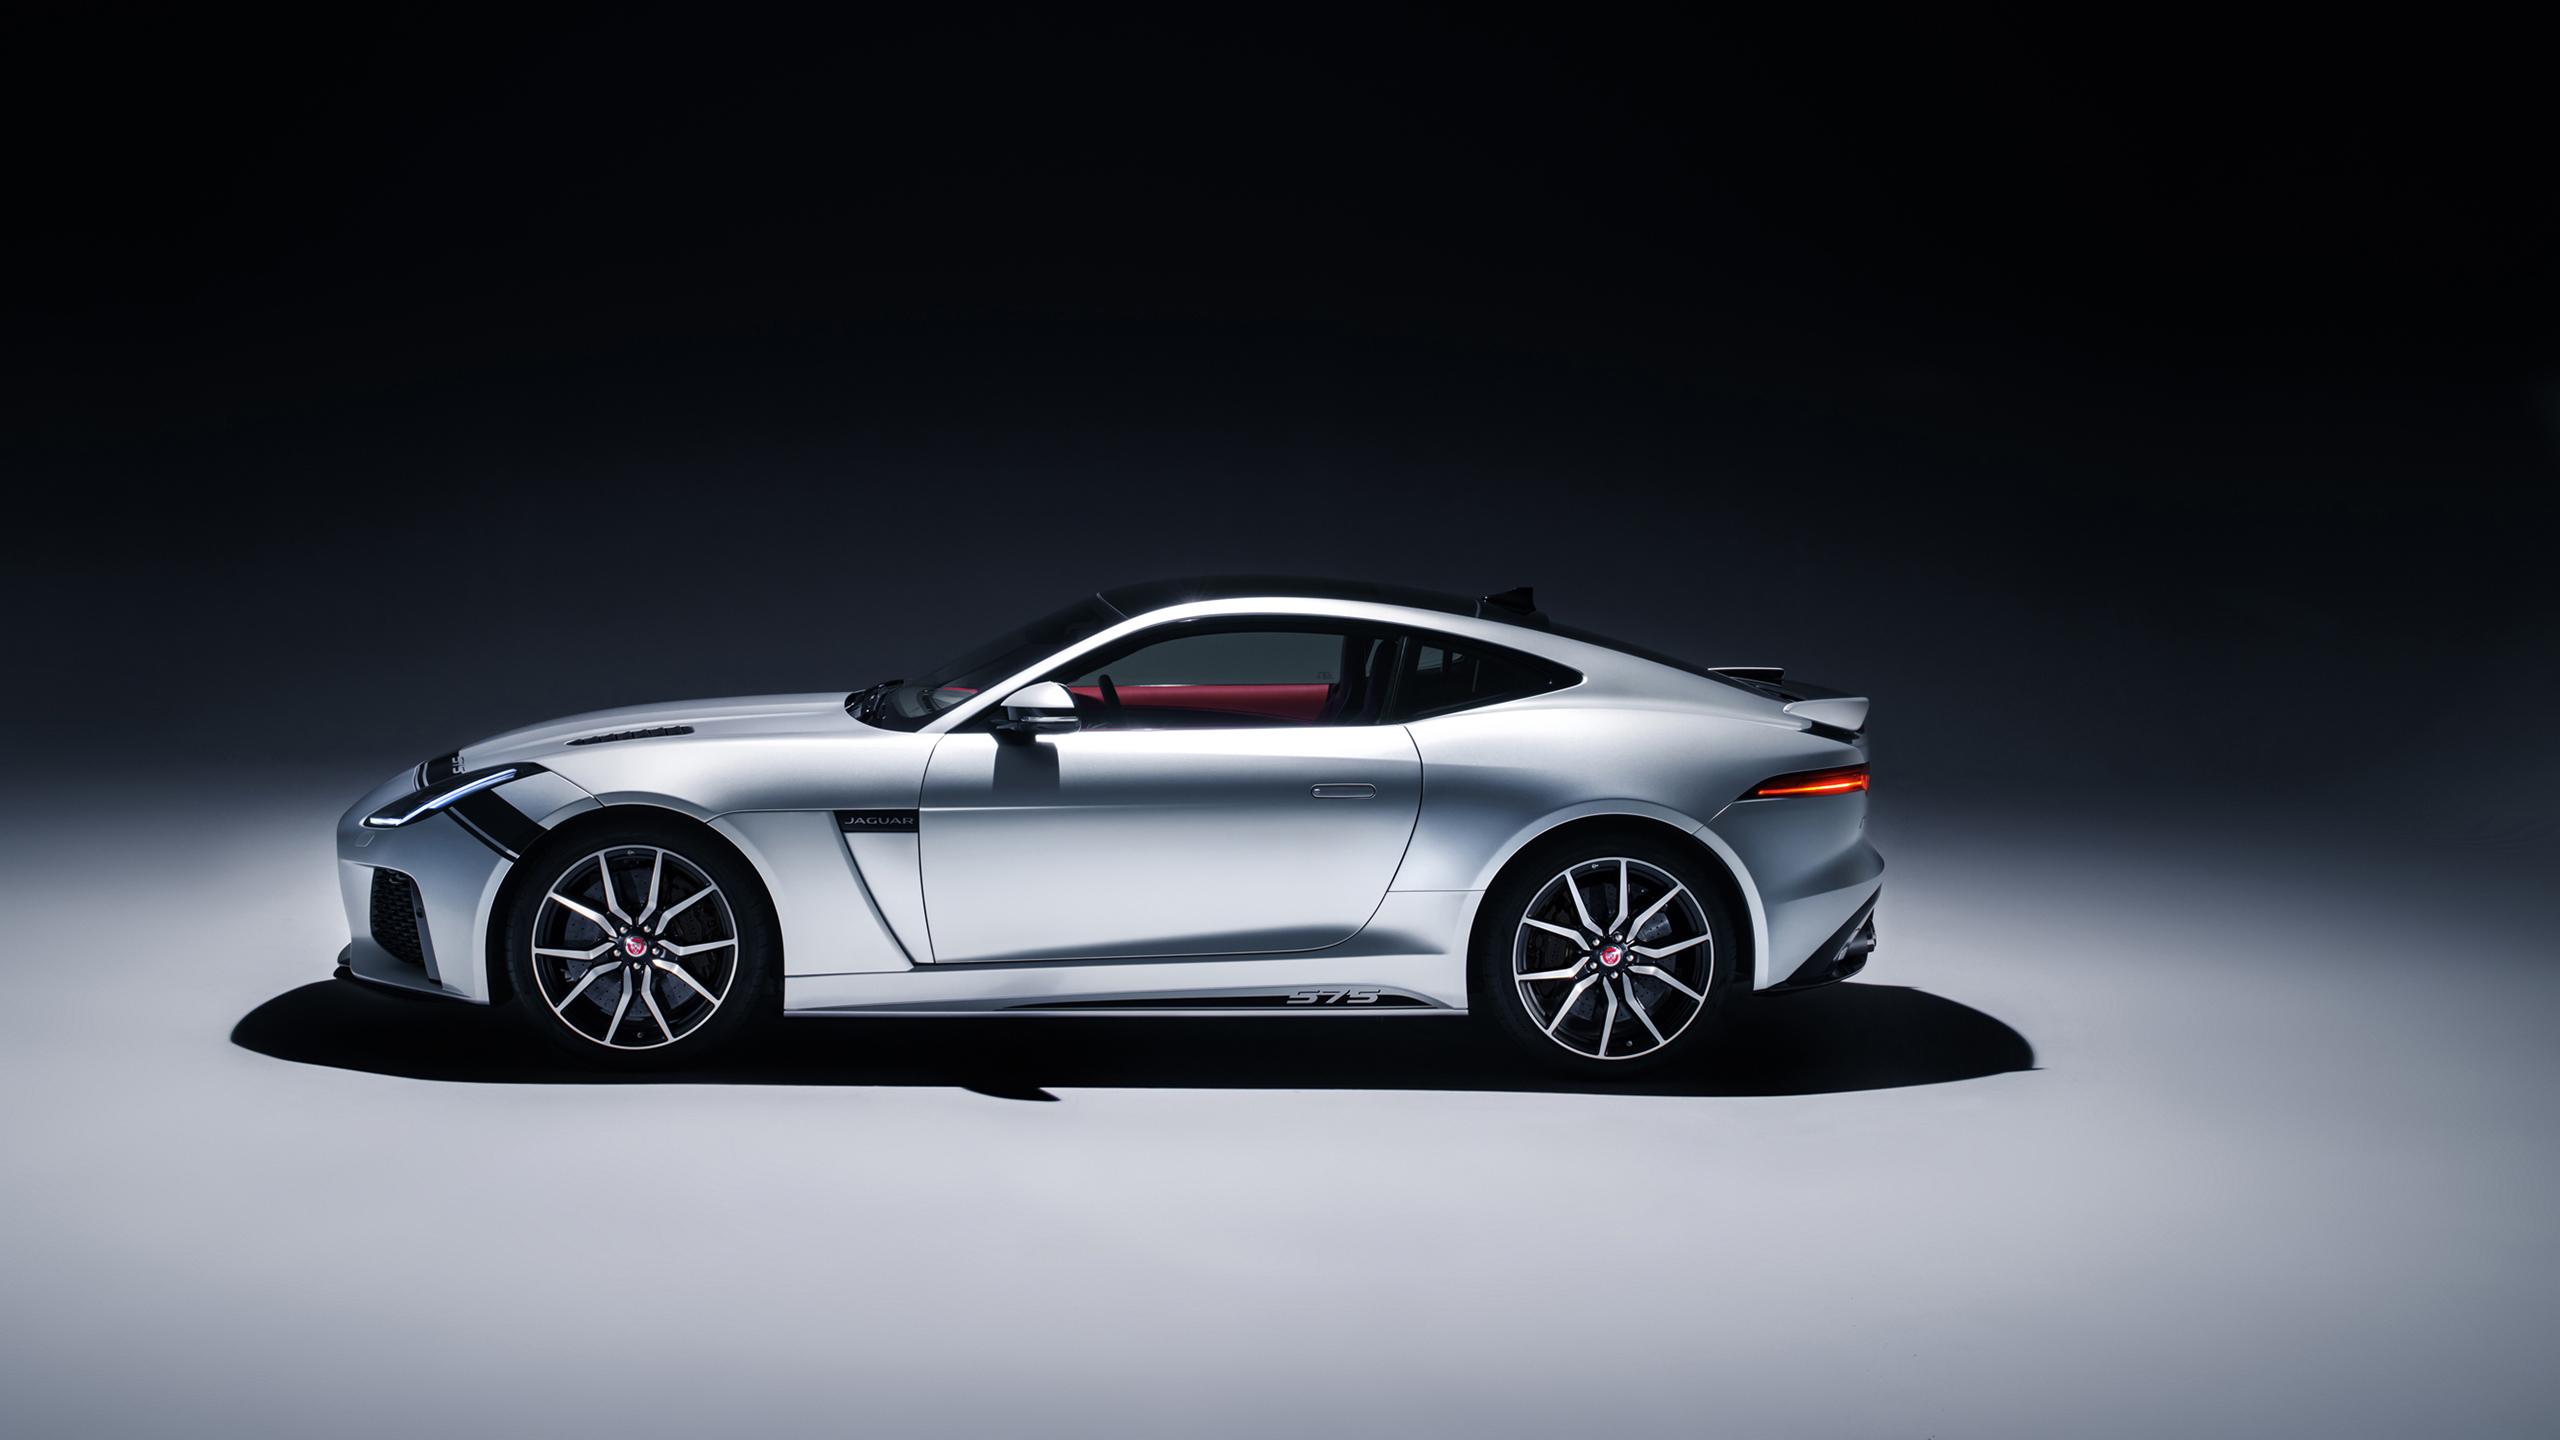 2018 Jaguar F Type Svr Graphic Pack Coupe 5 Wallpaper Hd Car Wallpapers Id 9783